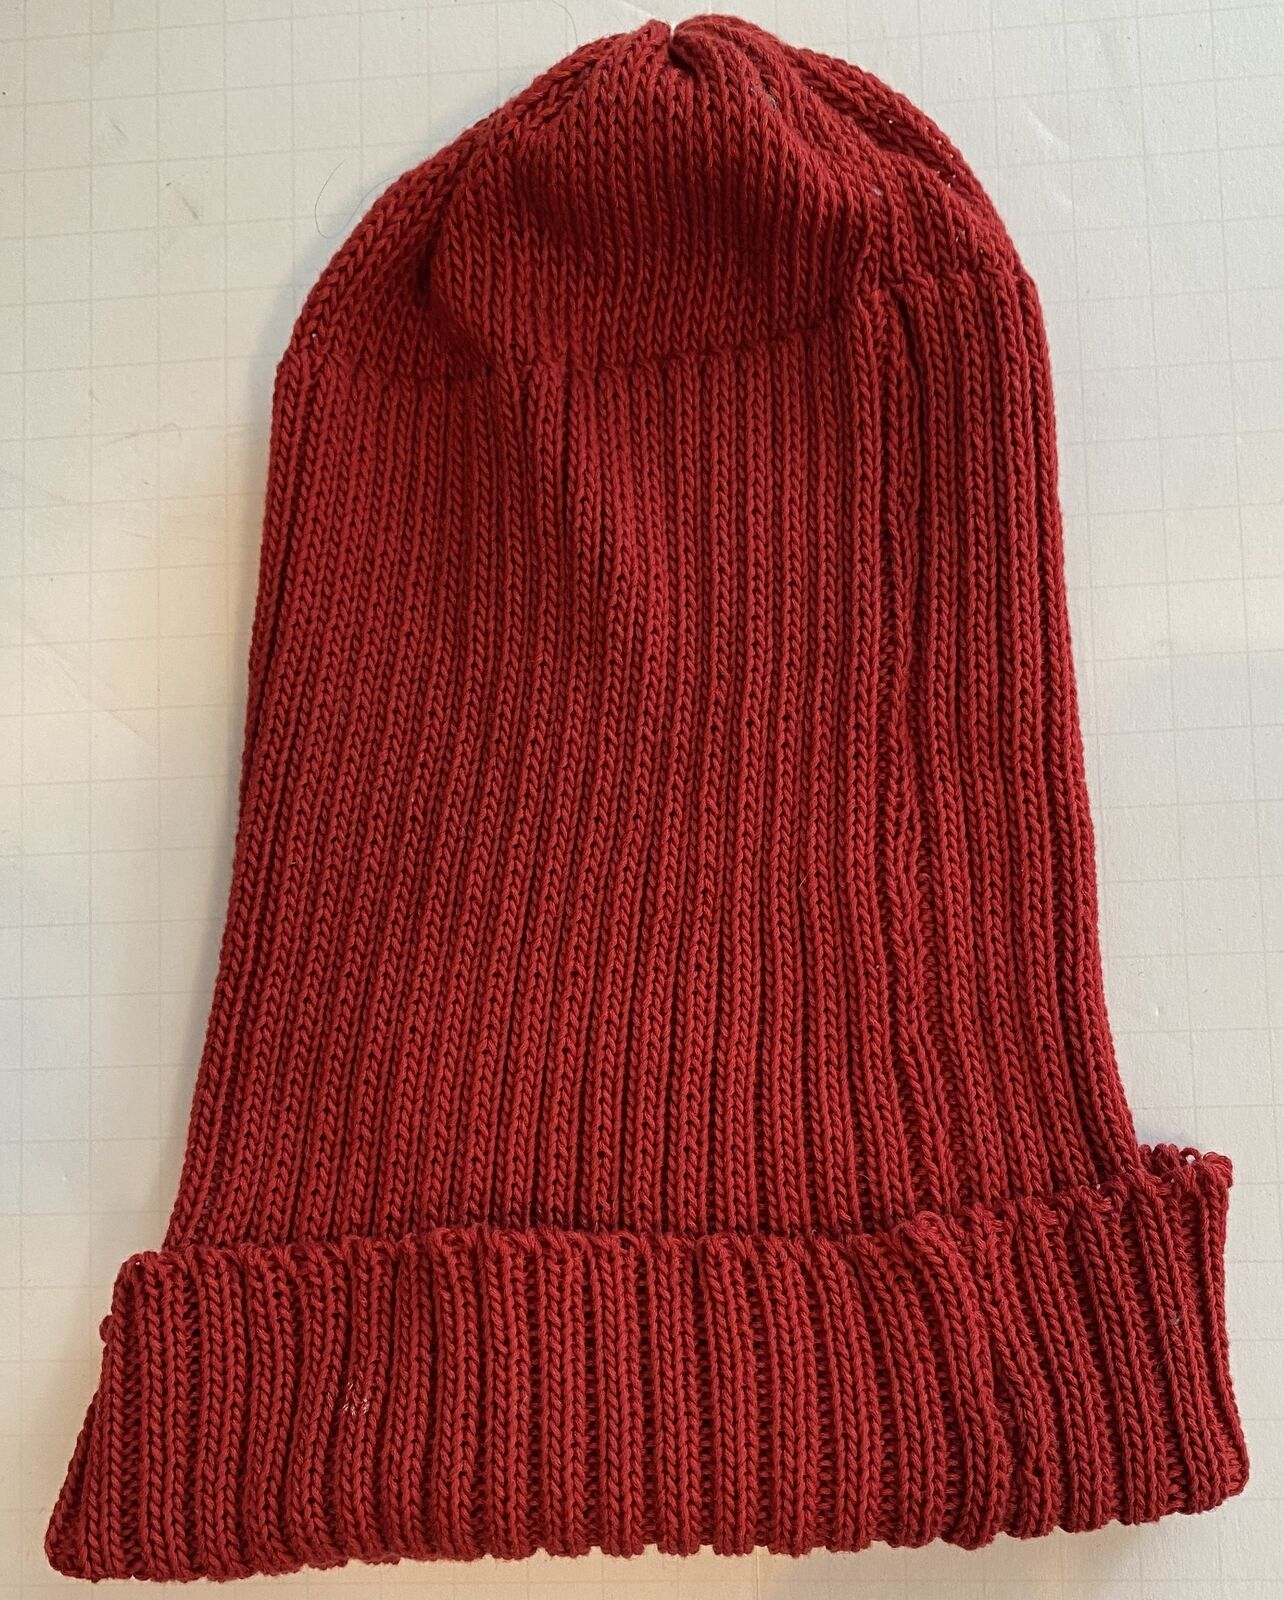 PATRICIA UNDERWOOD KNITS red ribbed beanie hat  - image 3